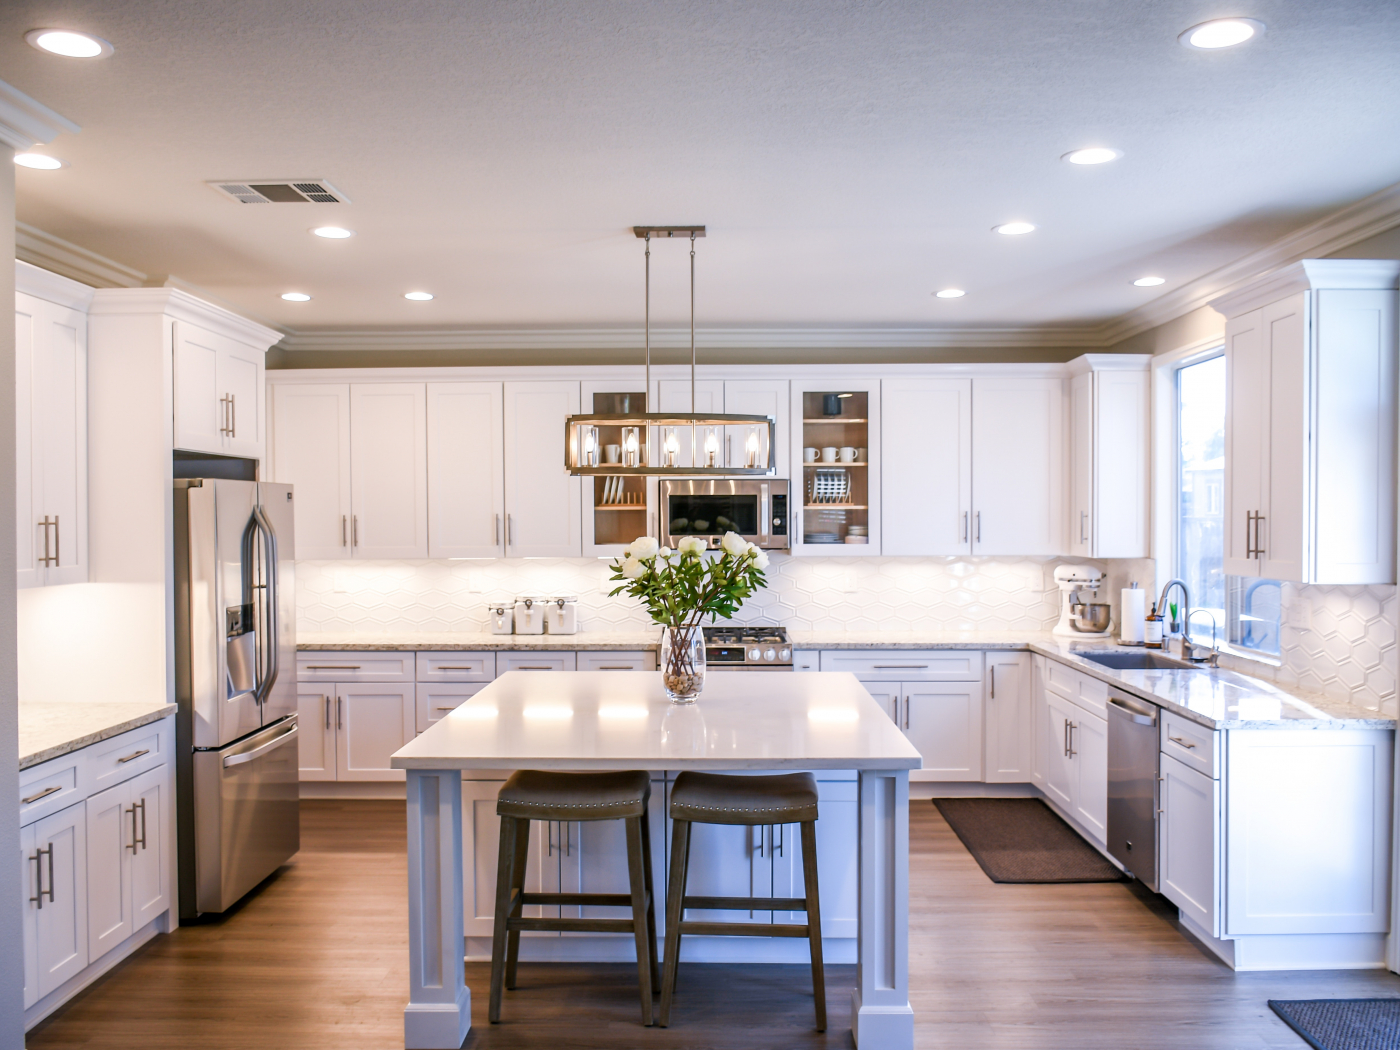 Profitable Cabinet Business for sale in Kelowna is a business for sale in BC.